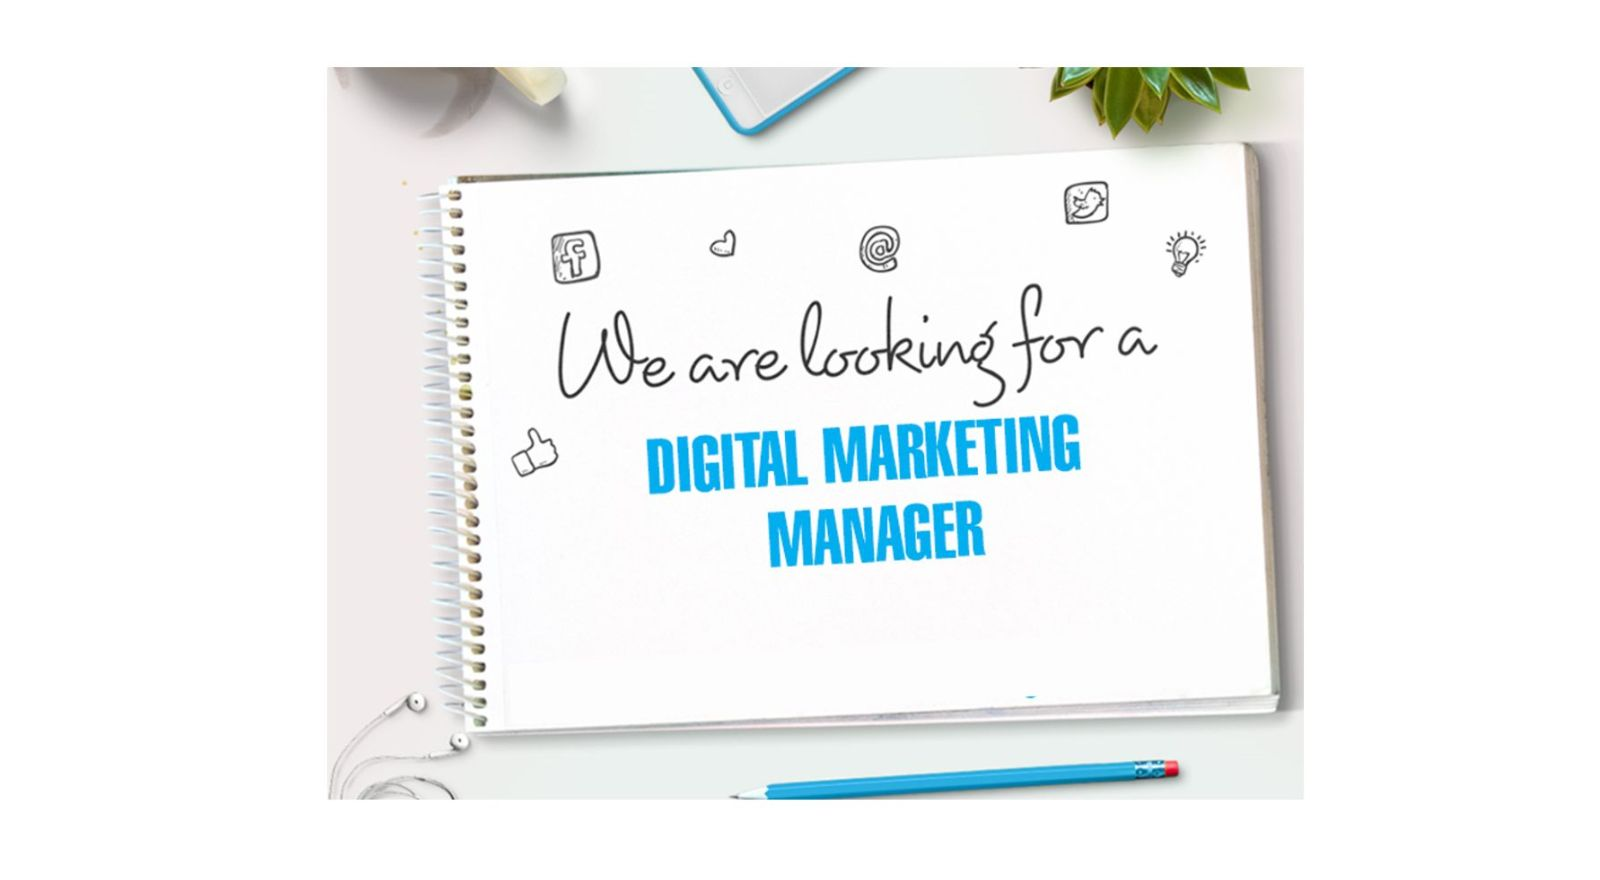 Digital Marketing Manager 1 at undefined